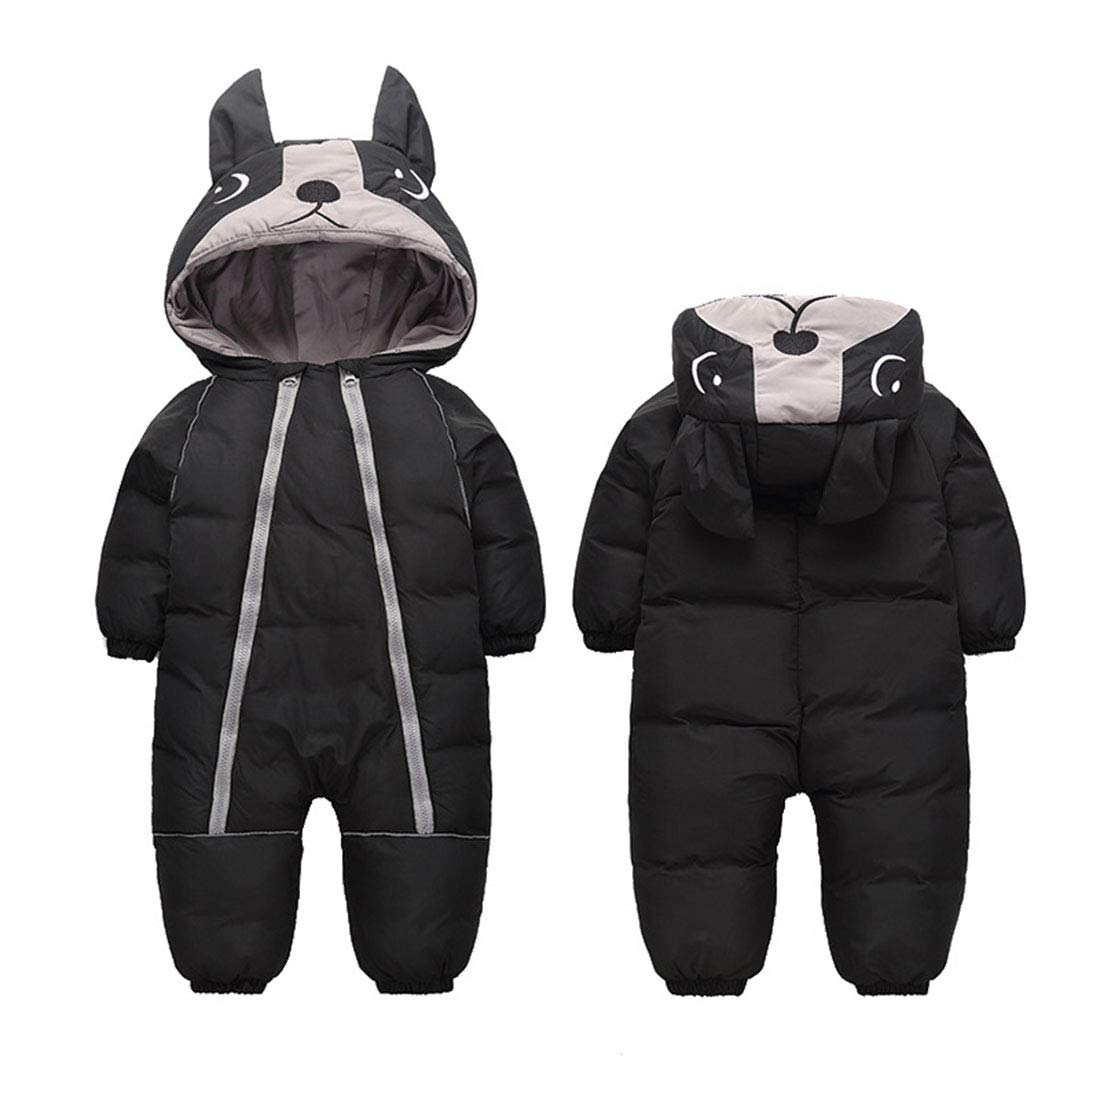 Cute Black Baby Onesie Snowsuit Soft Silky Lining Romper with Hood Zipper Closure for 3T Baby Black by Ohrwurm